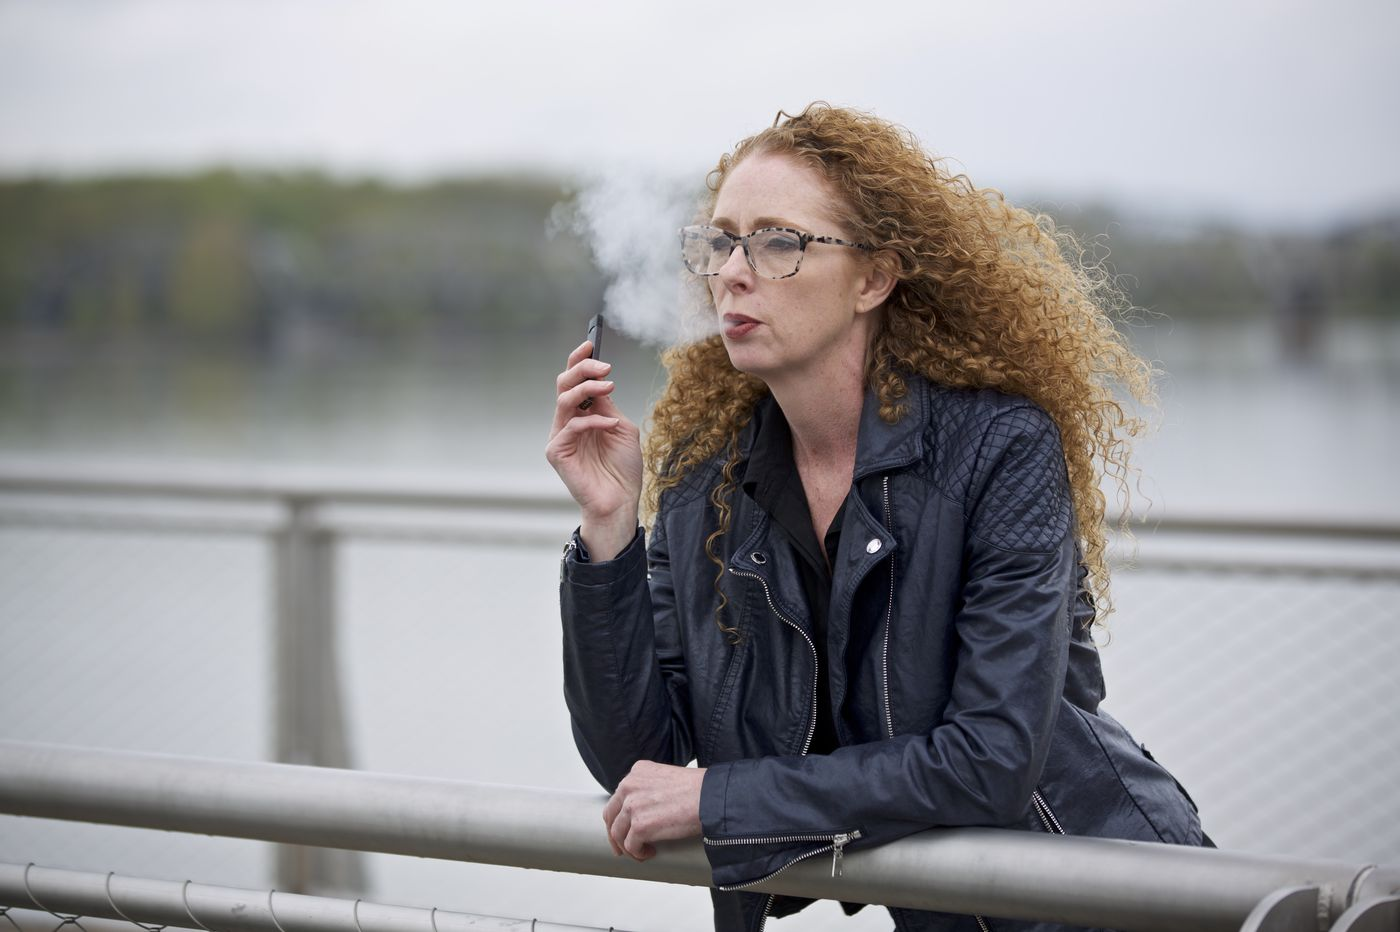 5 questions: Is quitting smoking more difficult for women?